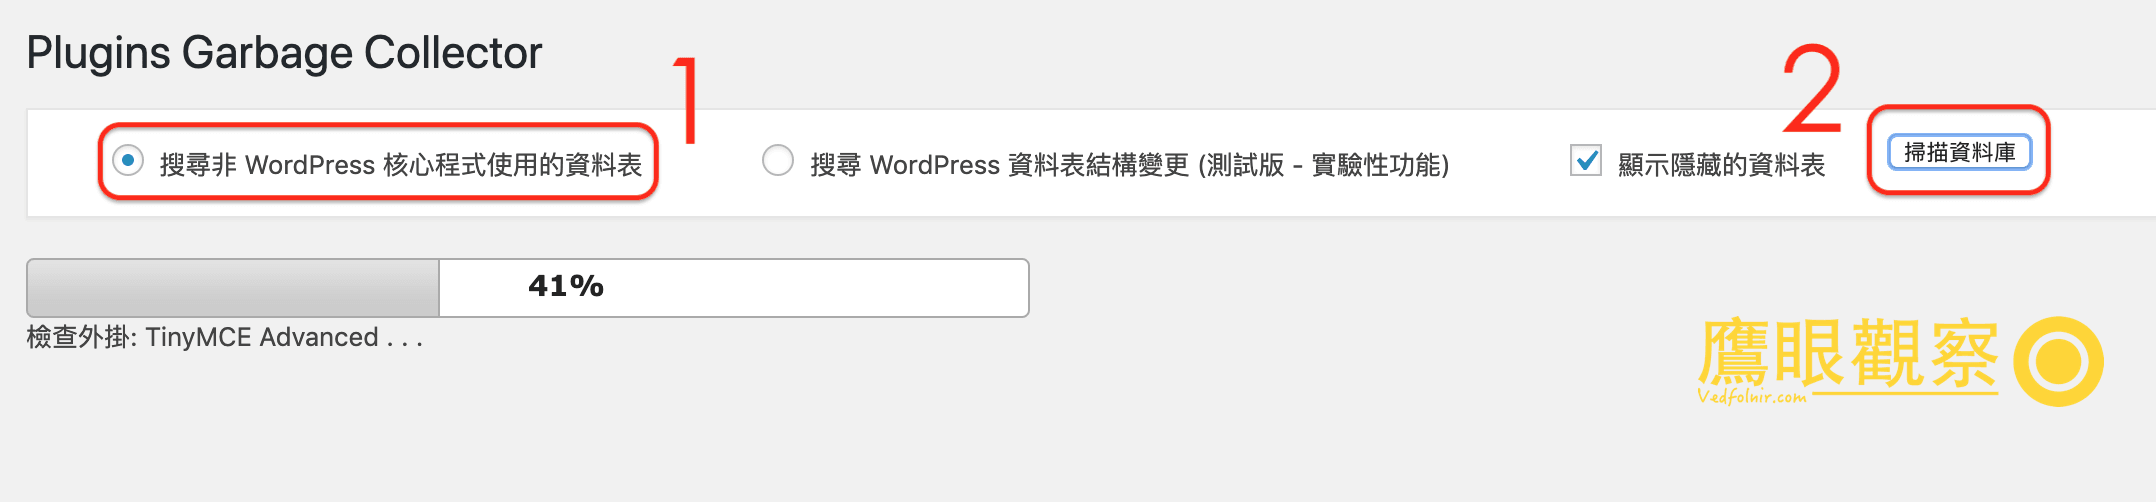 Plugins Garbage Collector Plugin Table Searchnig WordPress 資料庫清理移除「Plugins Garbage Collector」外掛程式推薦